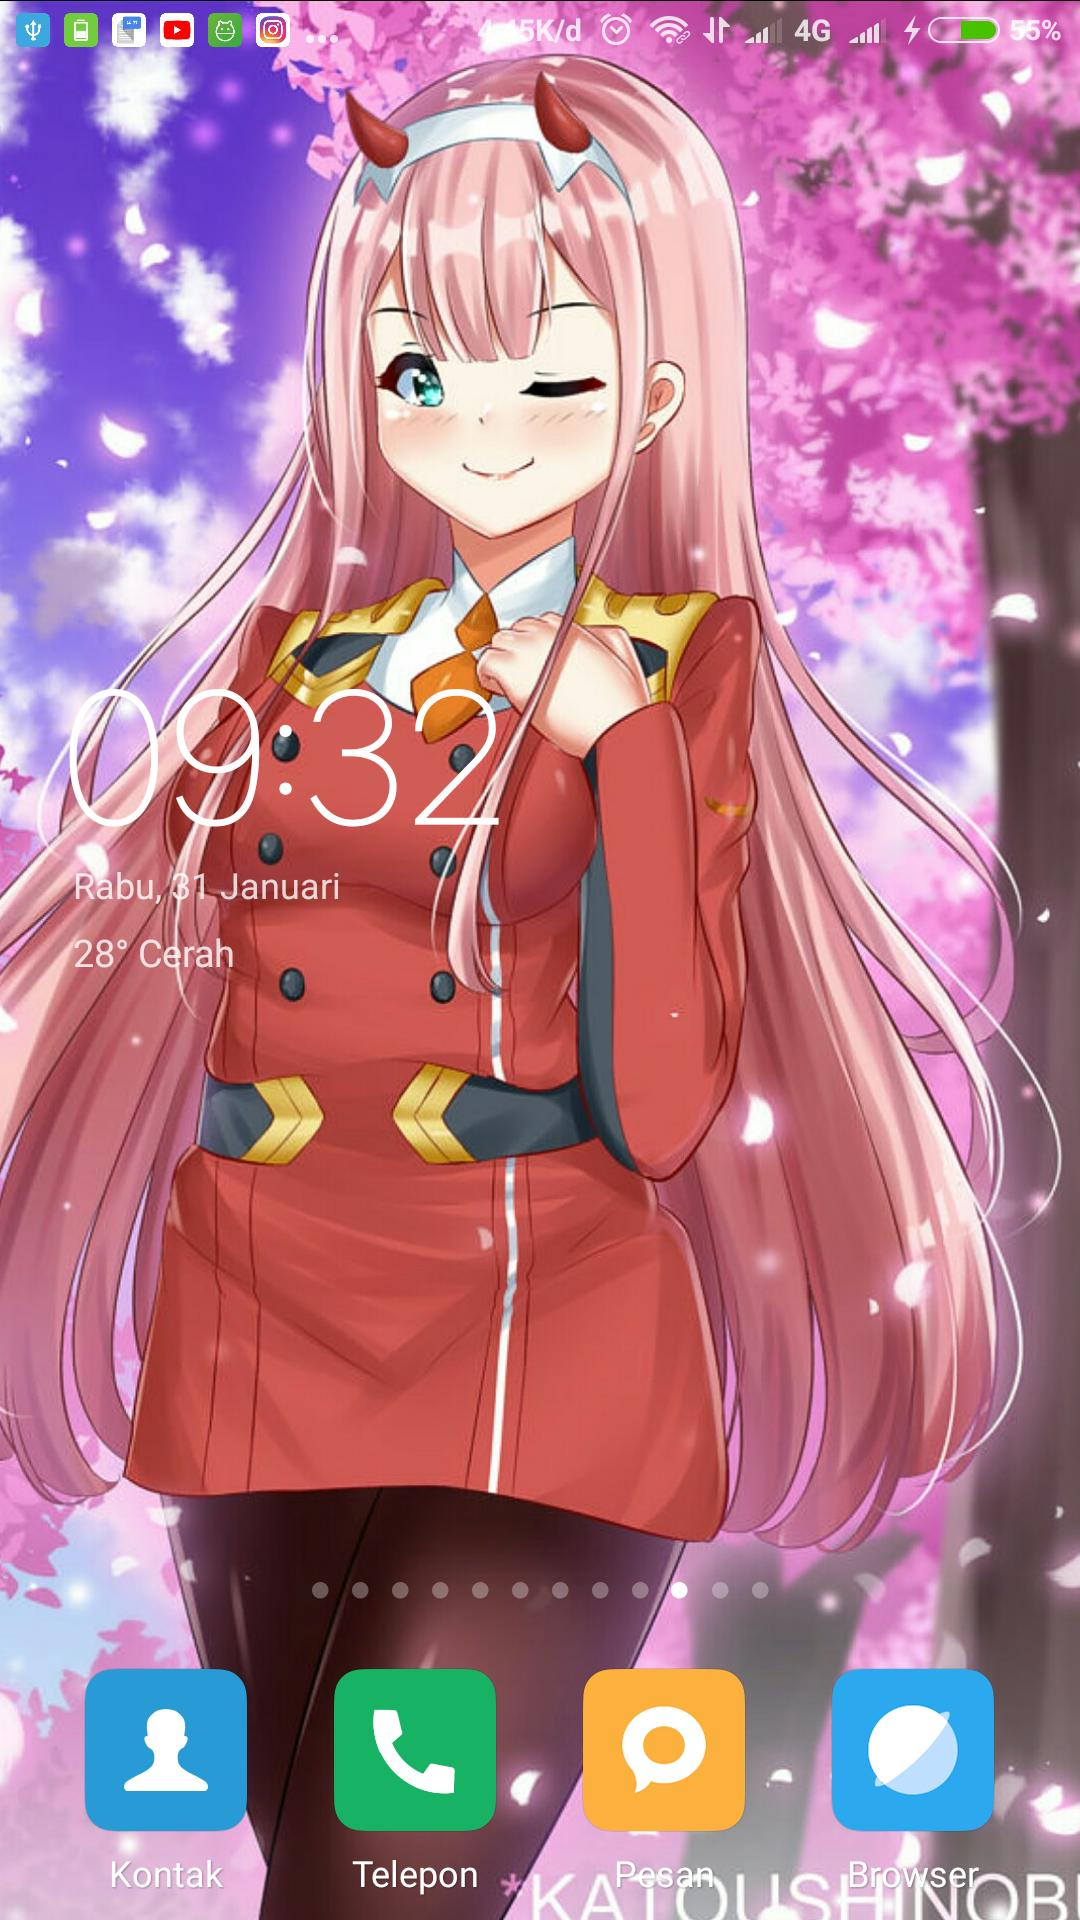 Android 用の Wallpaper Hd Darling In The Franxx Fansart Apk を